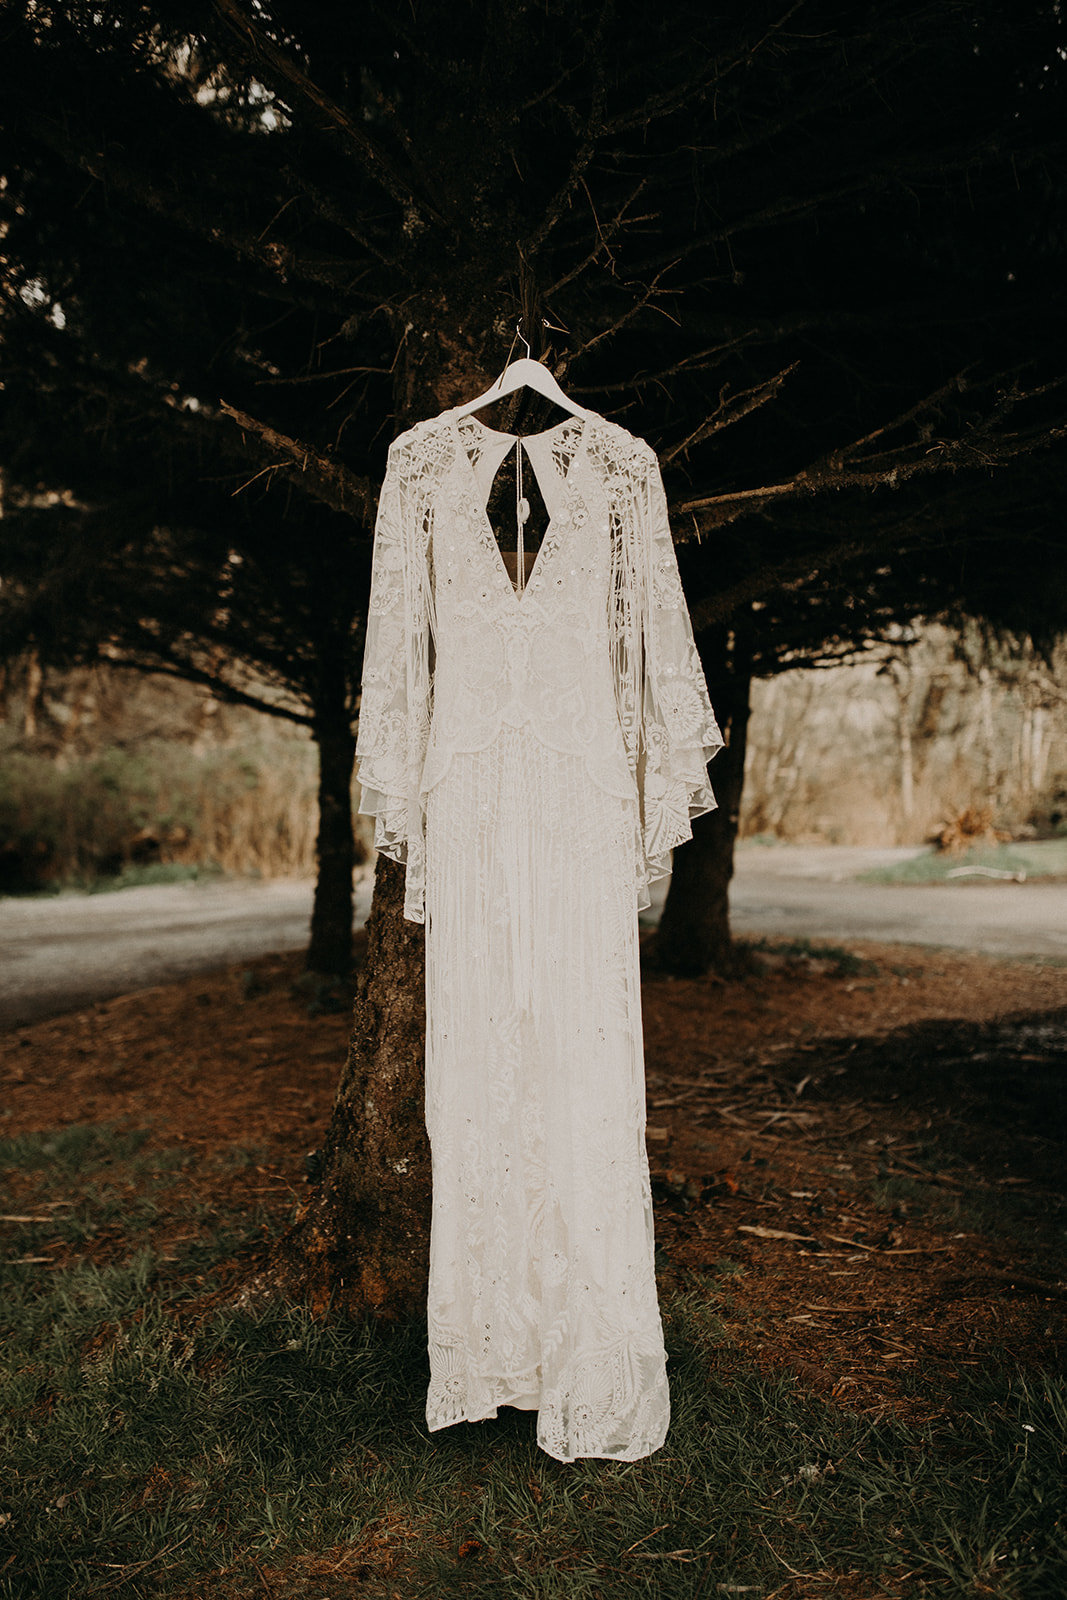 Ruby_Beach_Styled_Elopement_-_Run_Away_with_Me_Elopement_Collective_-_Kamra_Fuller_Photography_-_Details-1